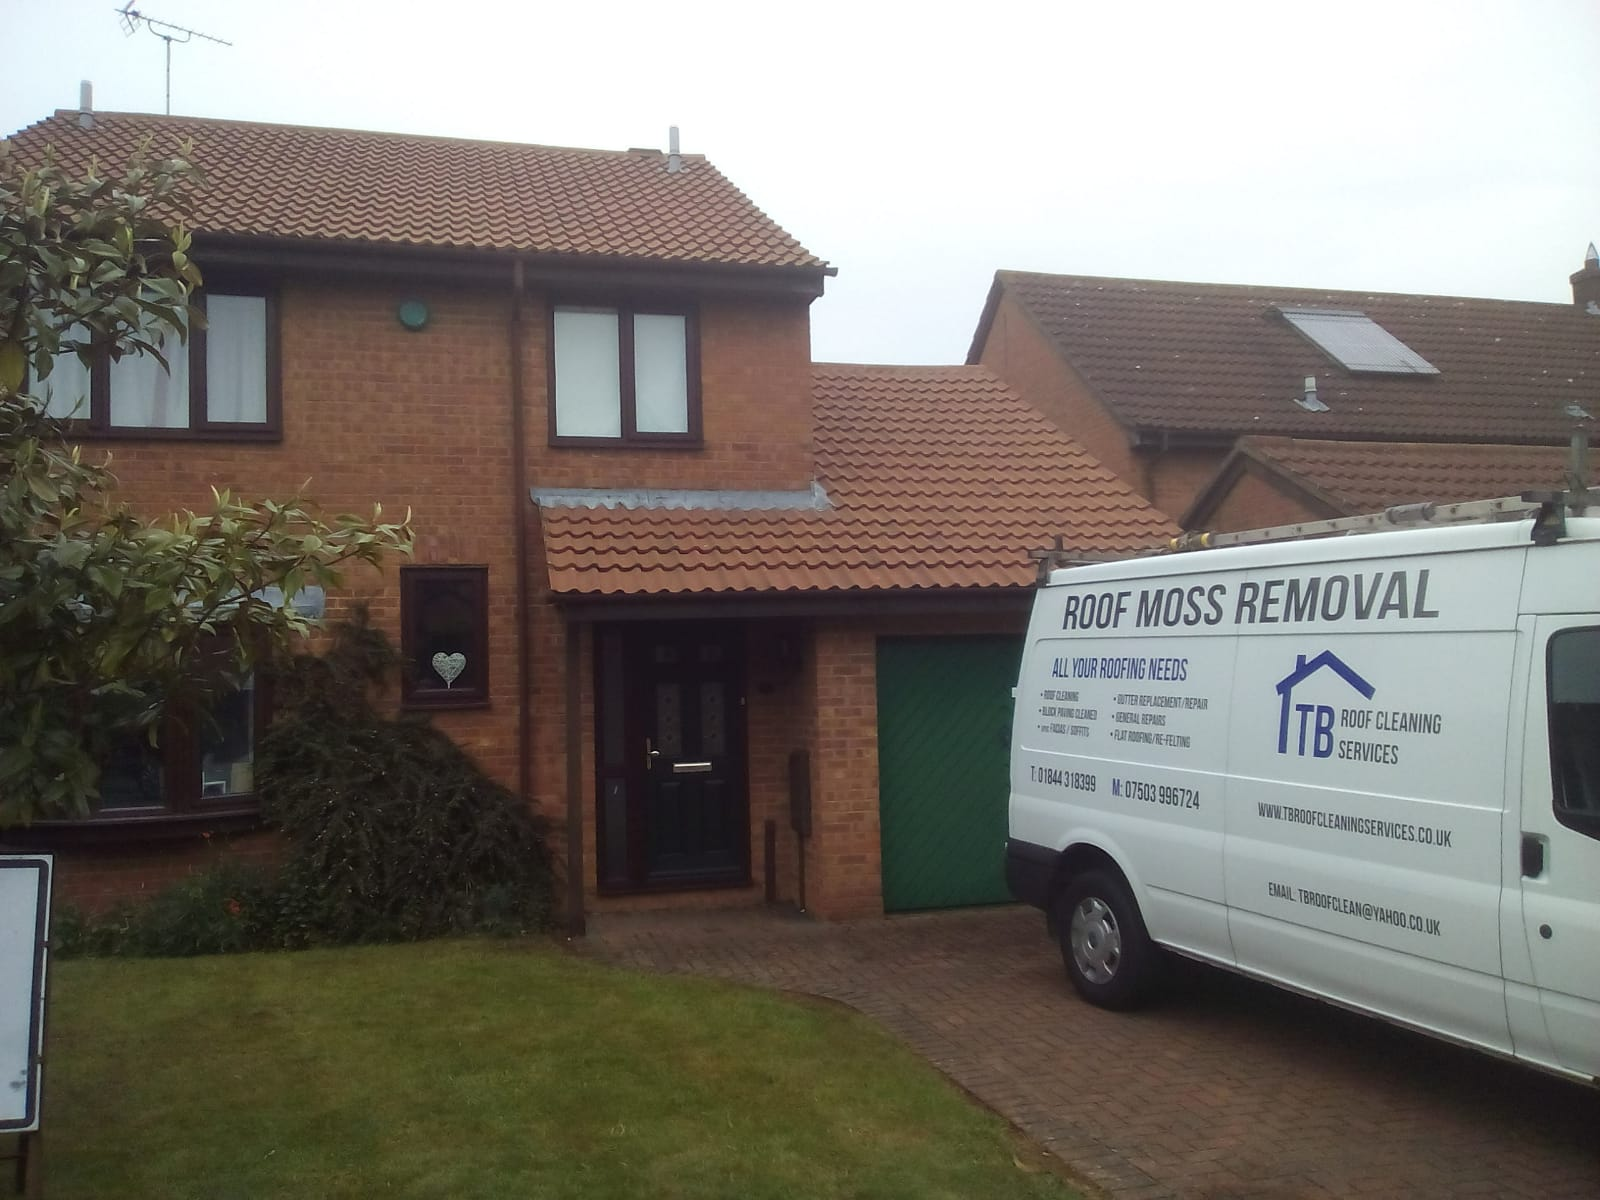 T B Roof Cleaning Services Roof Moss Removal